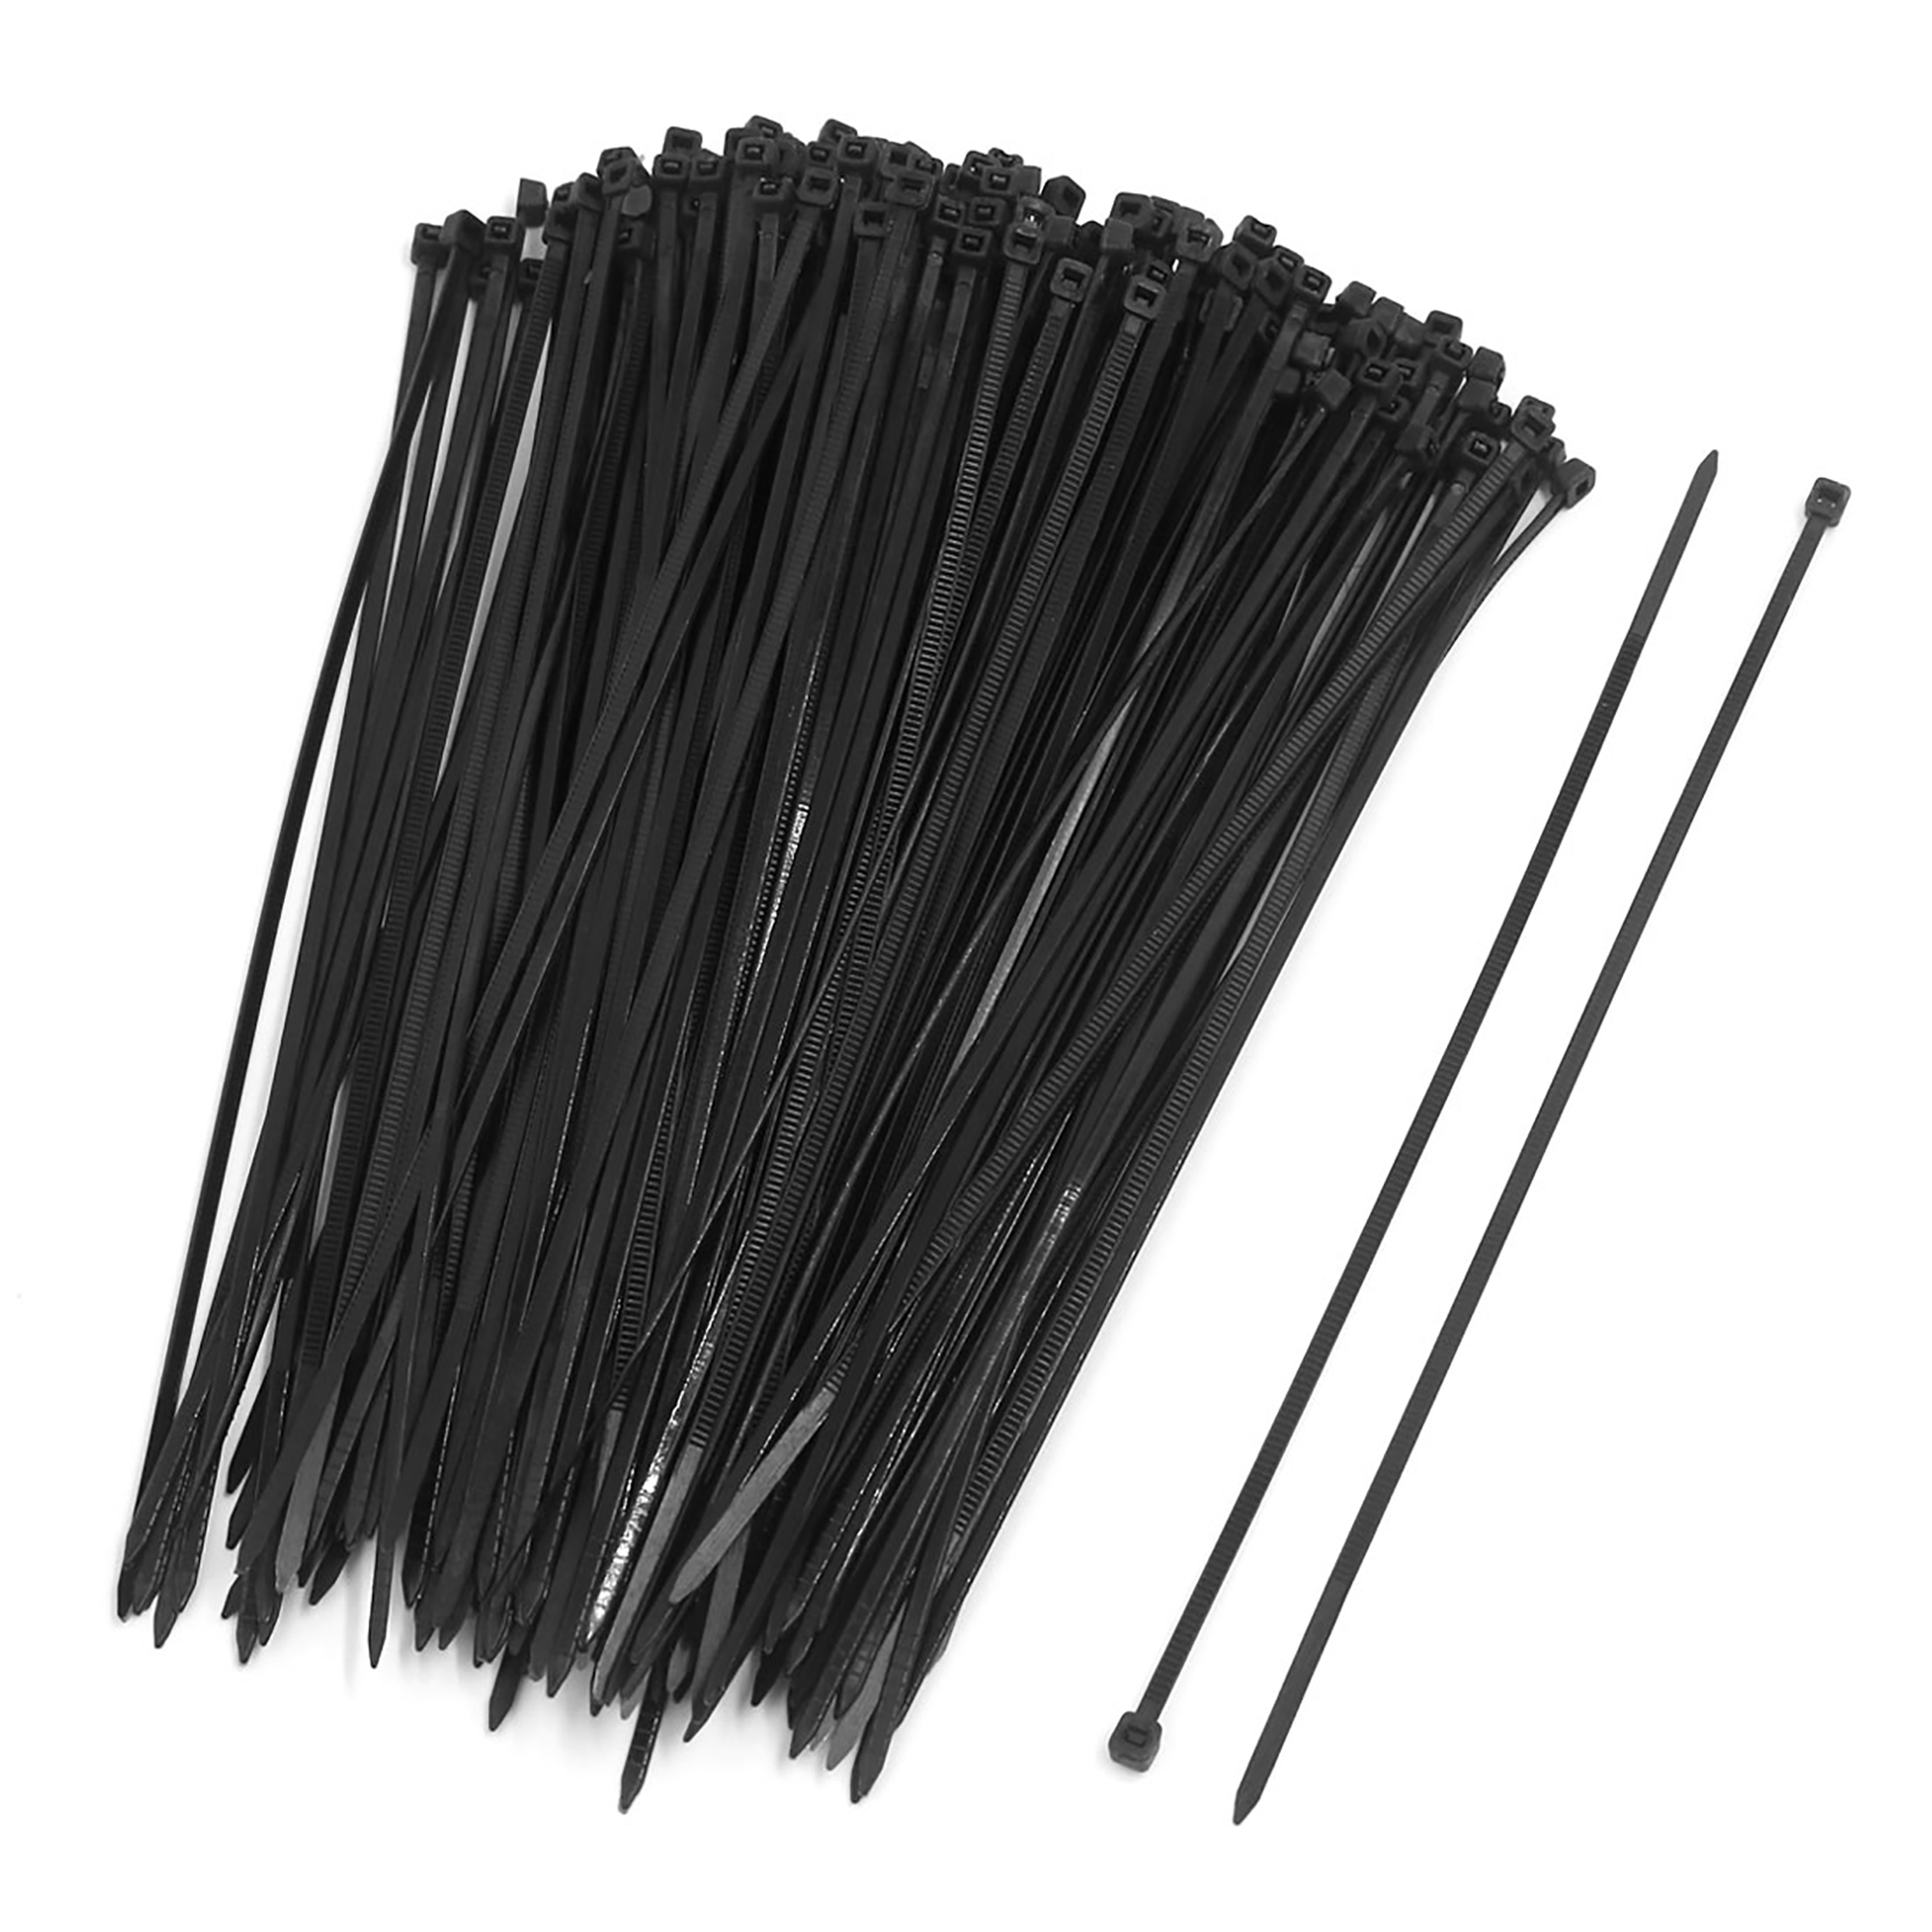 200pcs 3 x 200mm Nylon Plastic Self Lock Network Cable Tie Zip Fasten Wire Black